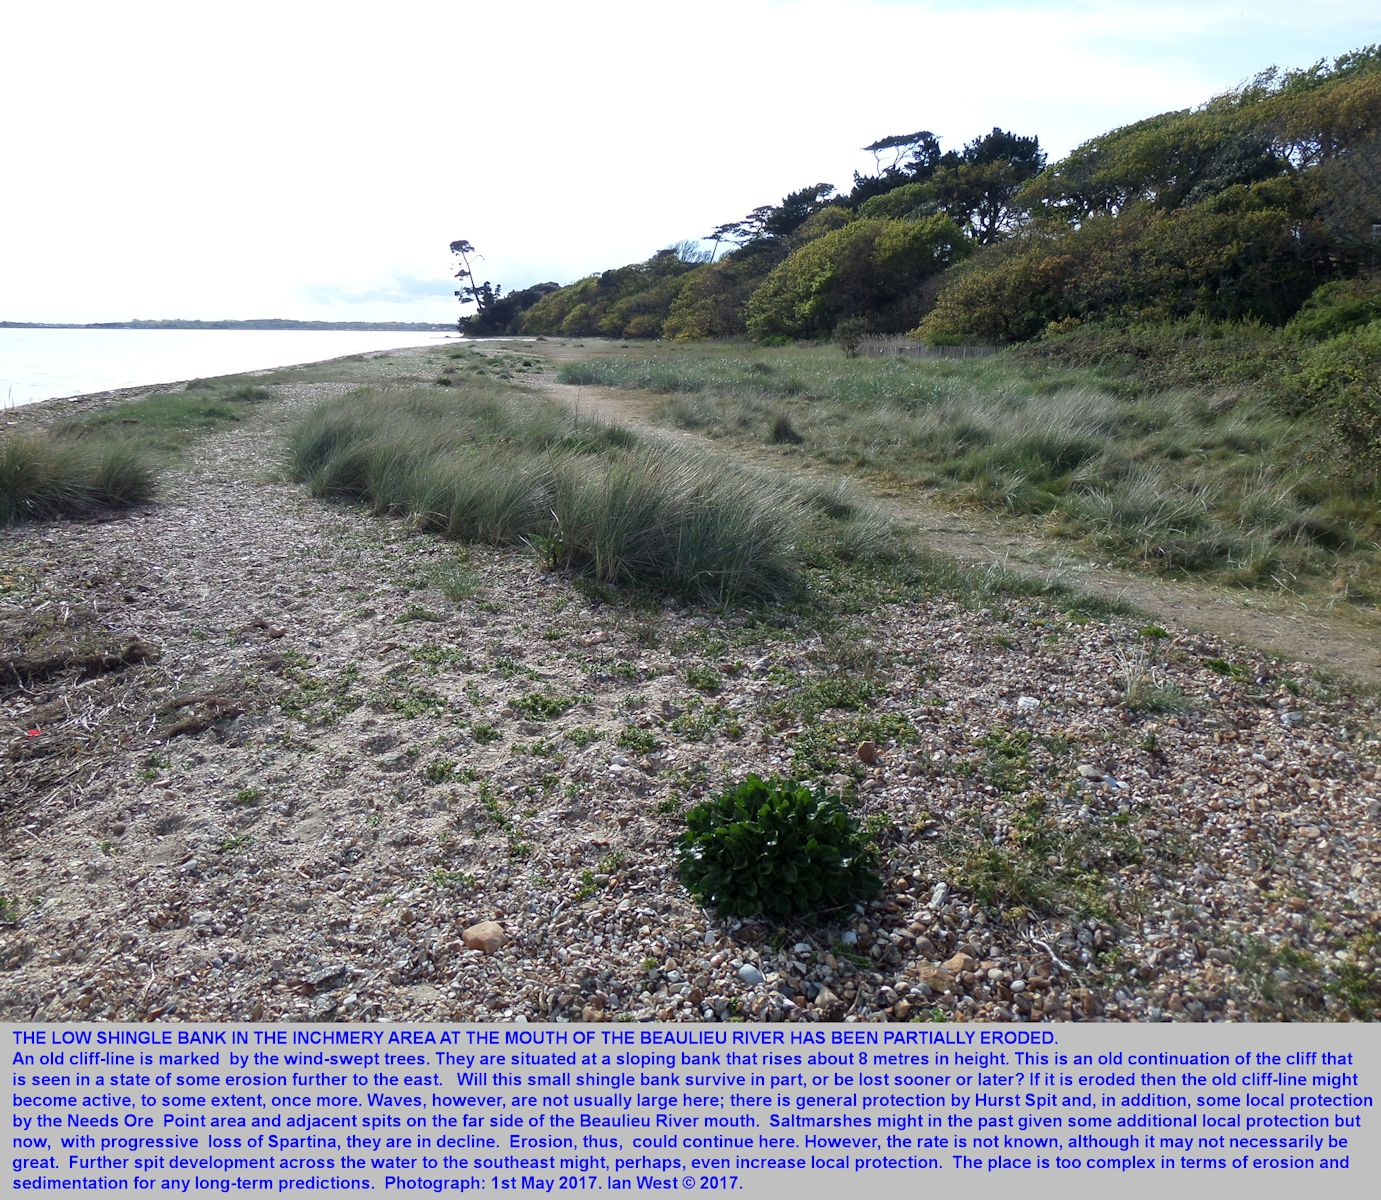 The small shingle bank near Inchmery House, west of Lepe Beach, Hampshire, is being eroded to some extent, photograph 1st May 2017